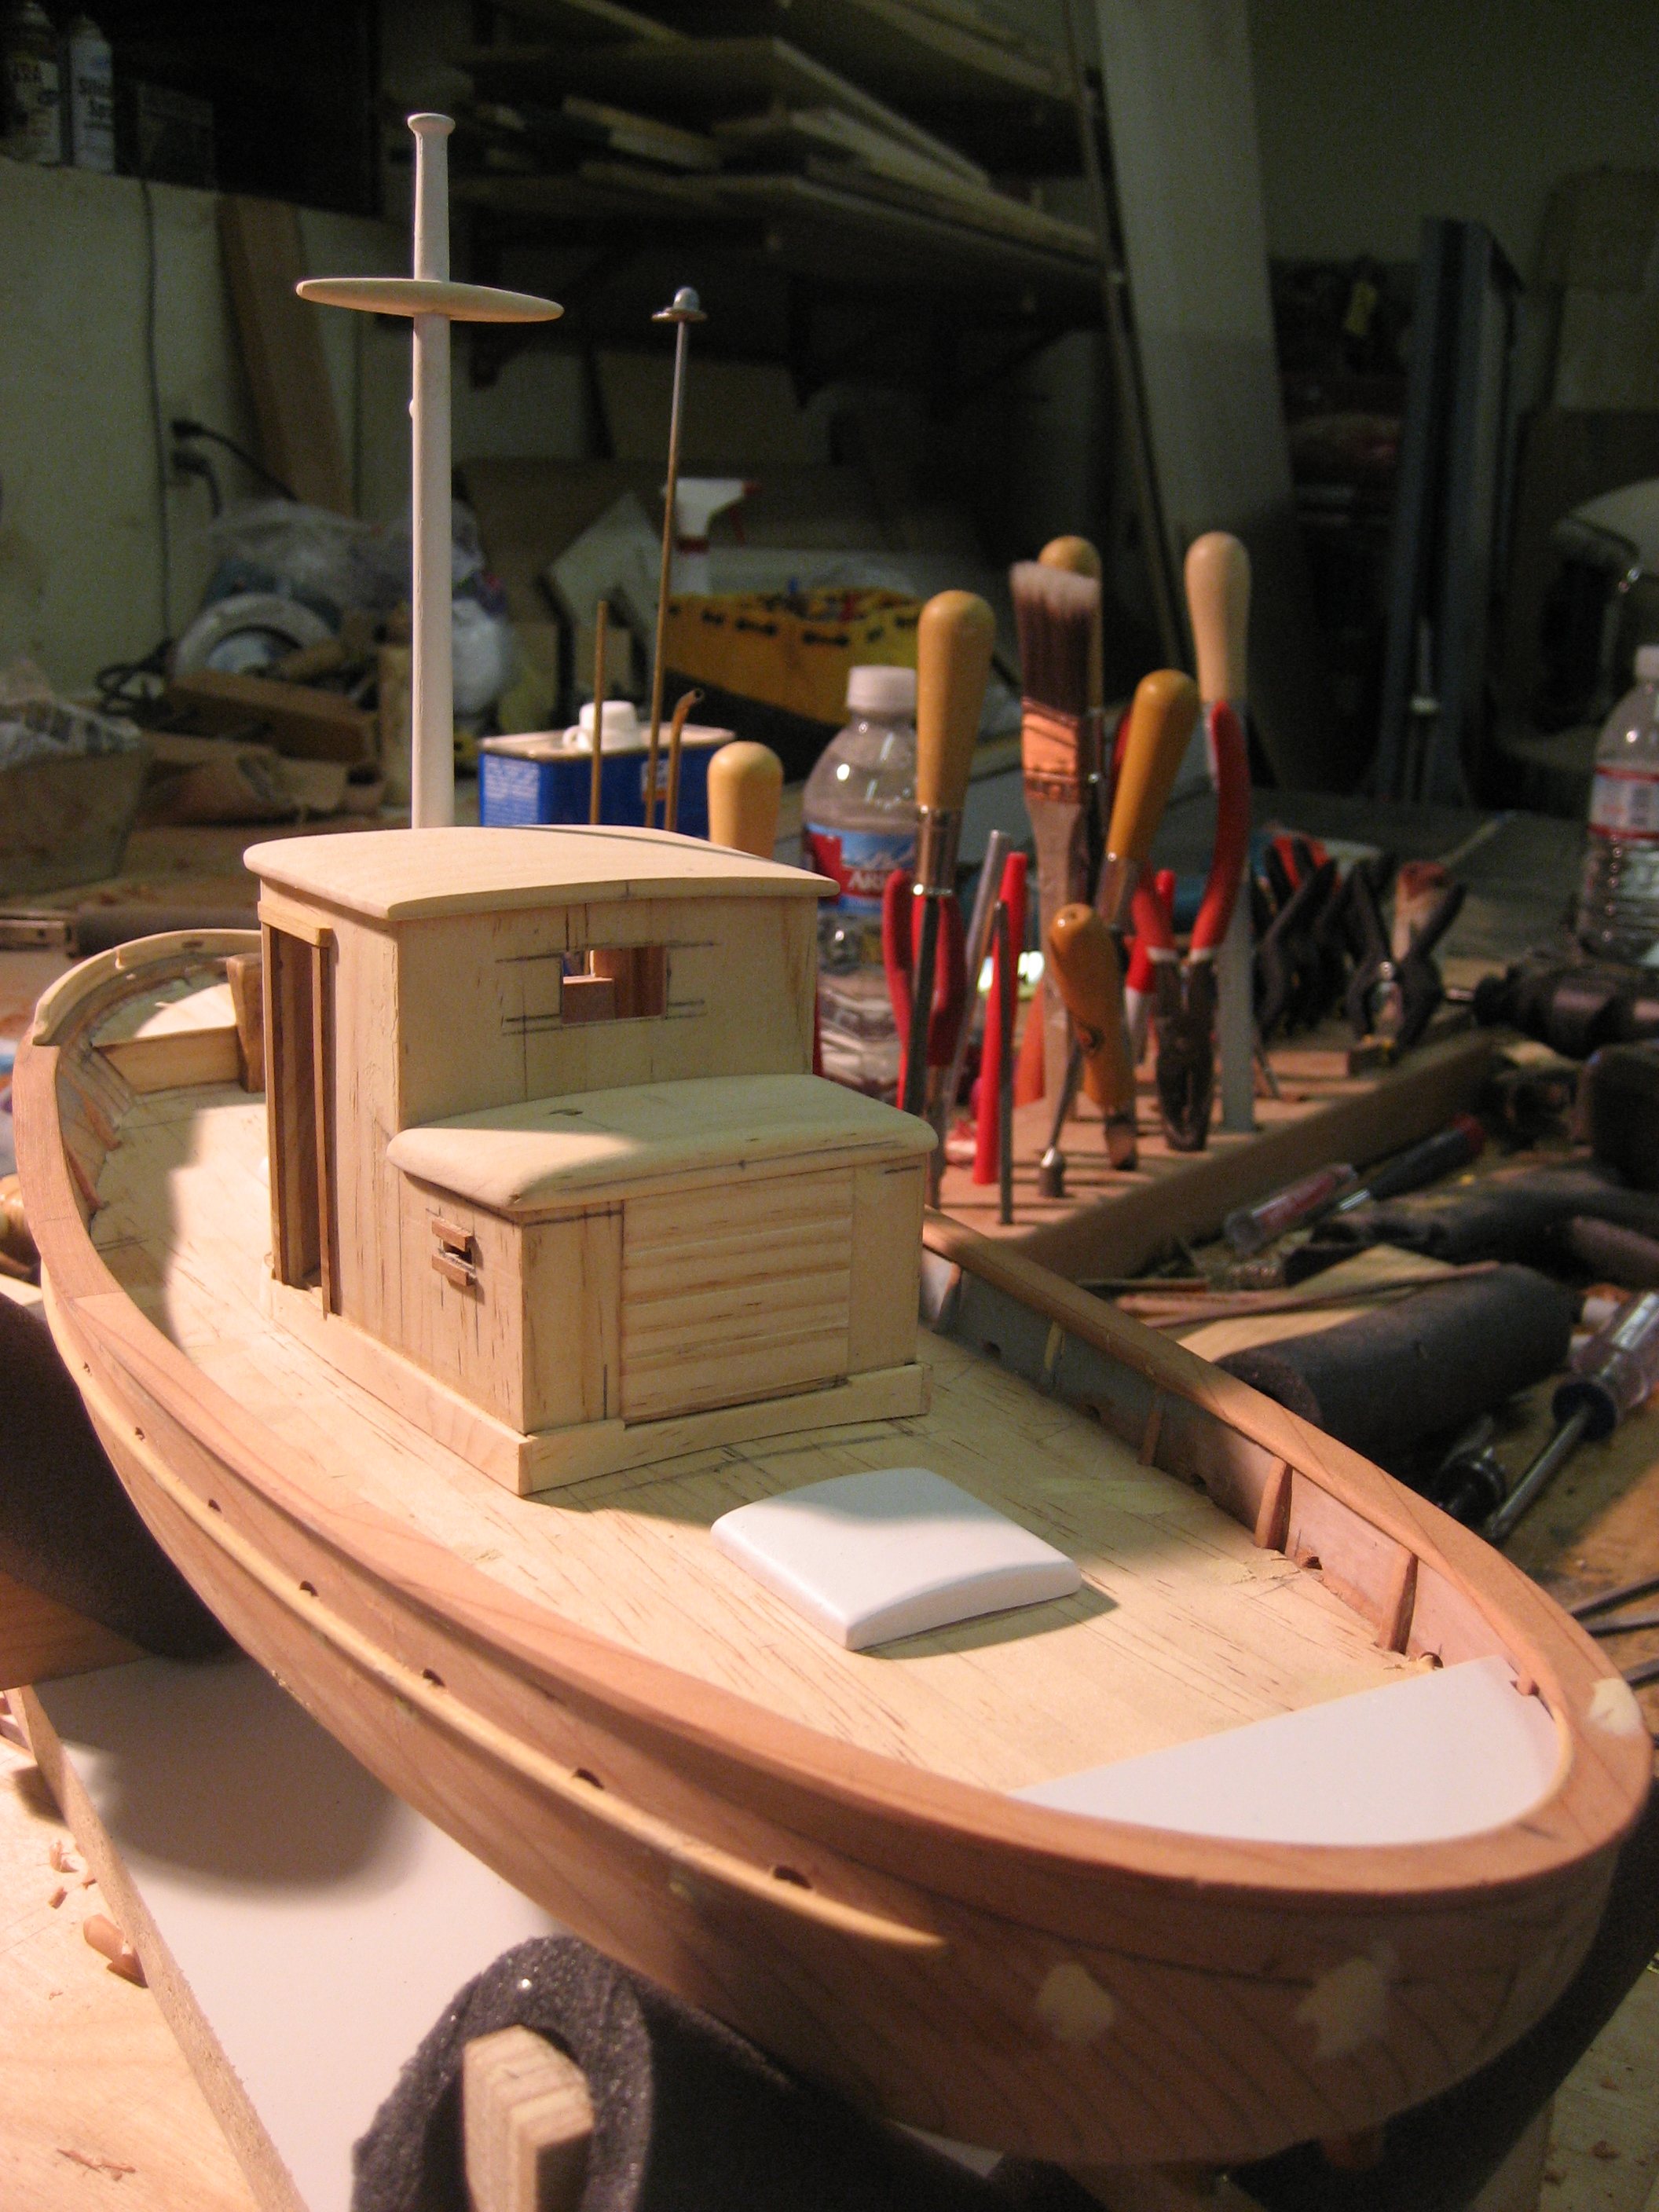 File:Model boat - Woodwork.jpg - Wikimedia Commons